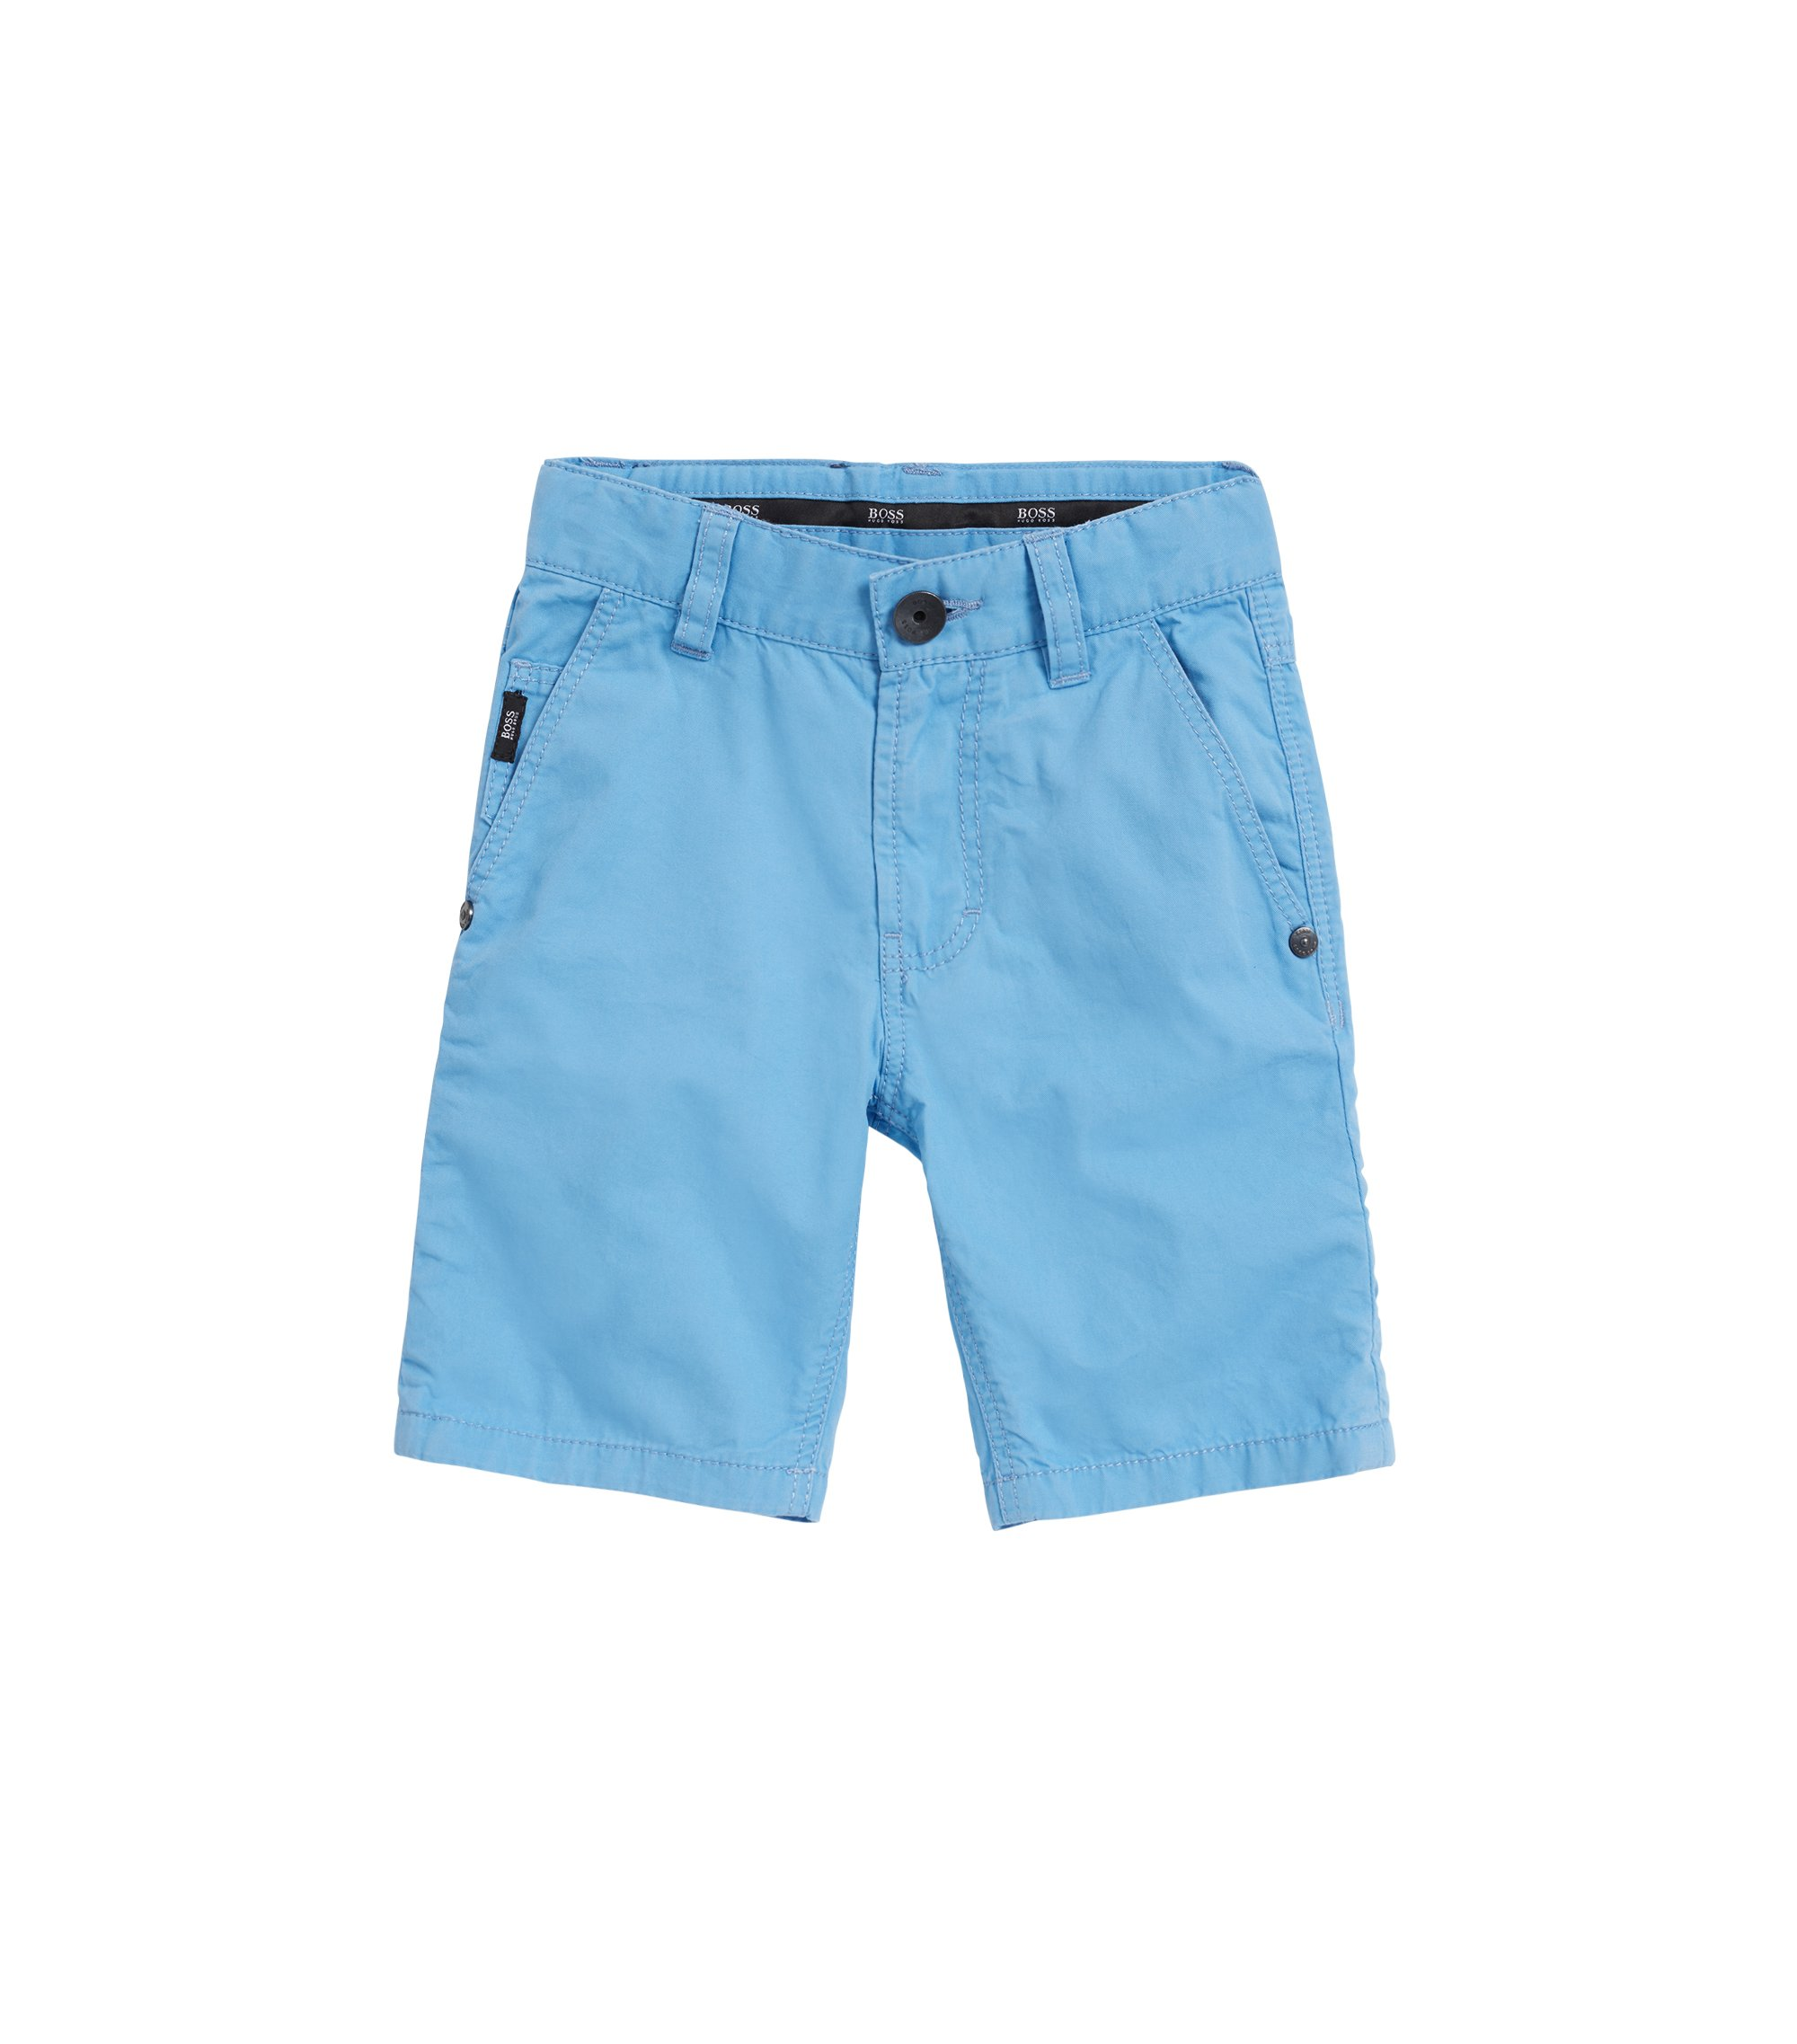 Kids' Bermuda shorts in cotton twill with taped cuffs, Turquoise